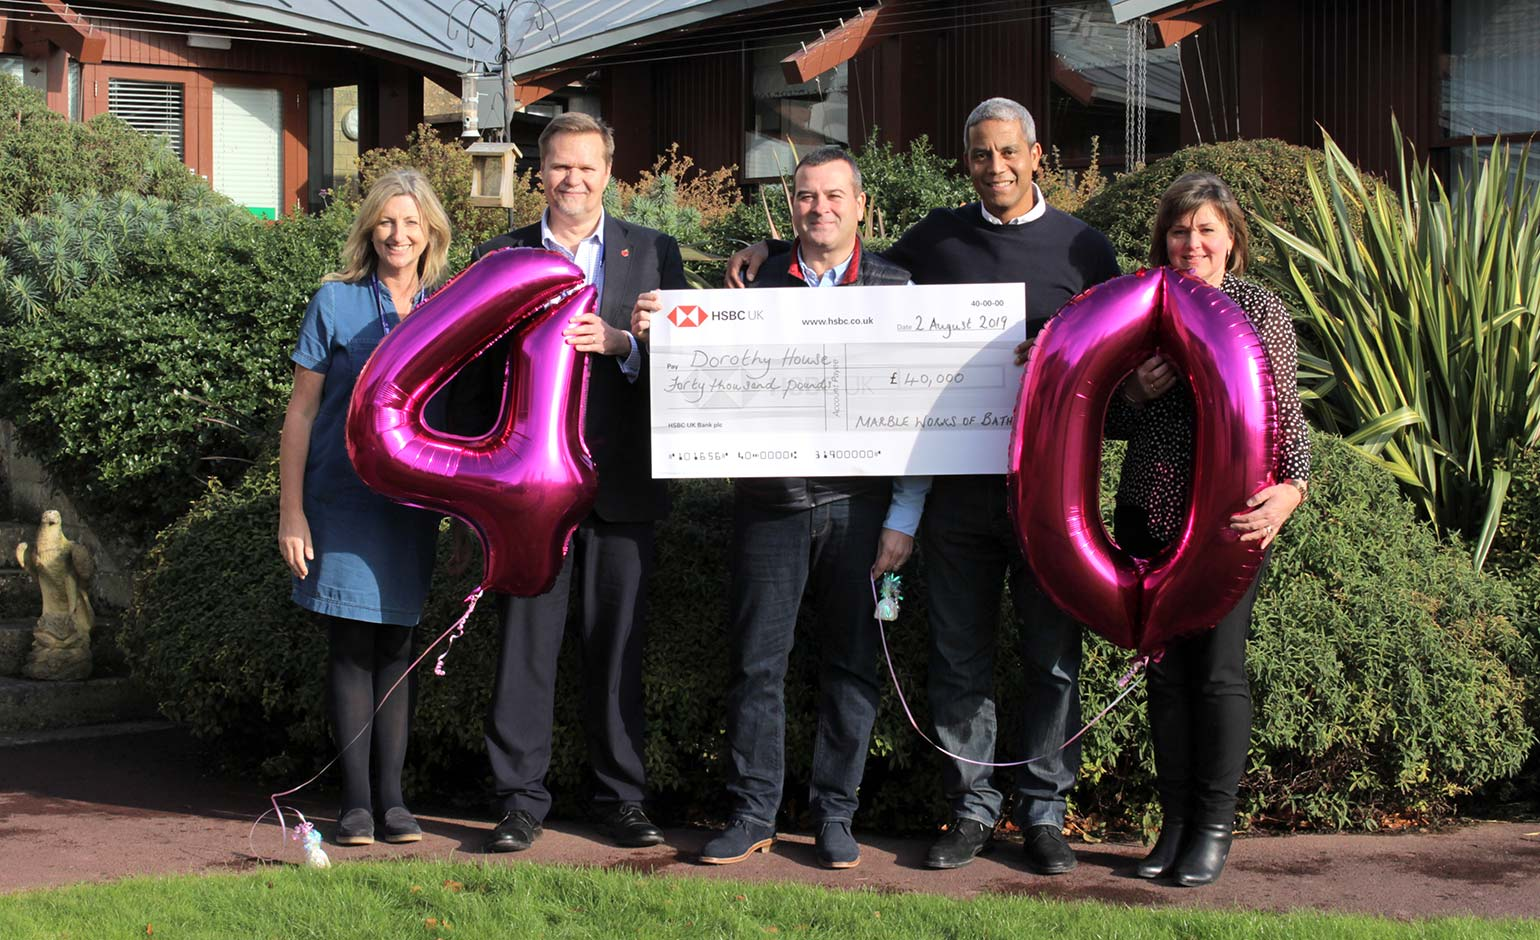 Charity golf day and auction raises £40k for Dorothy House Hospice Care | Bath Echo